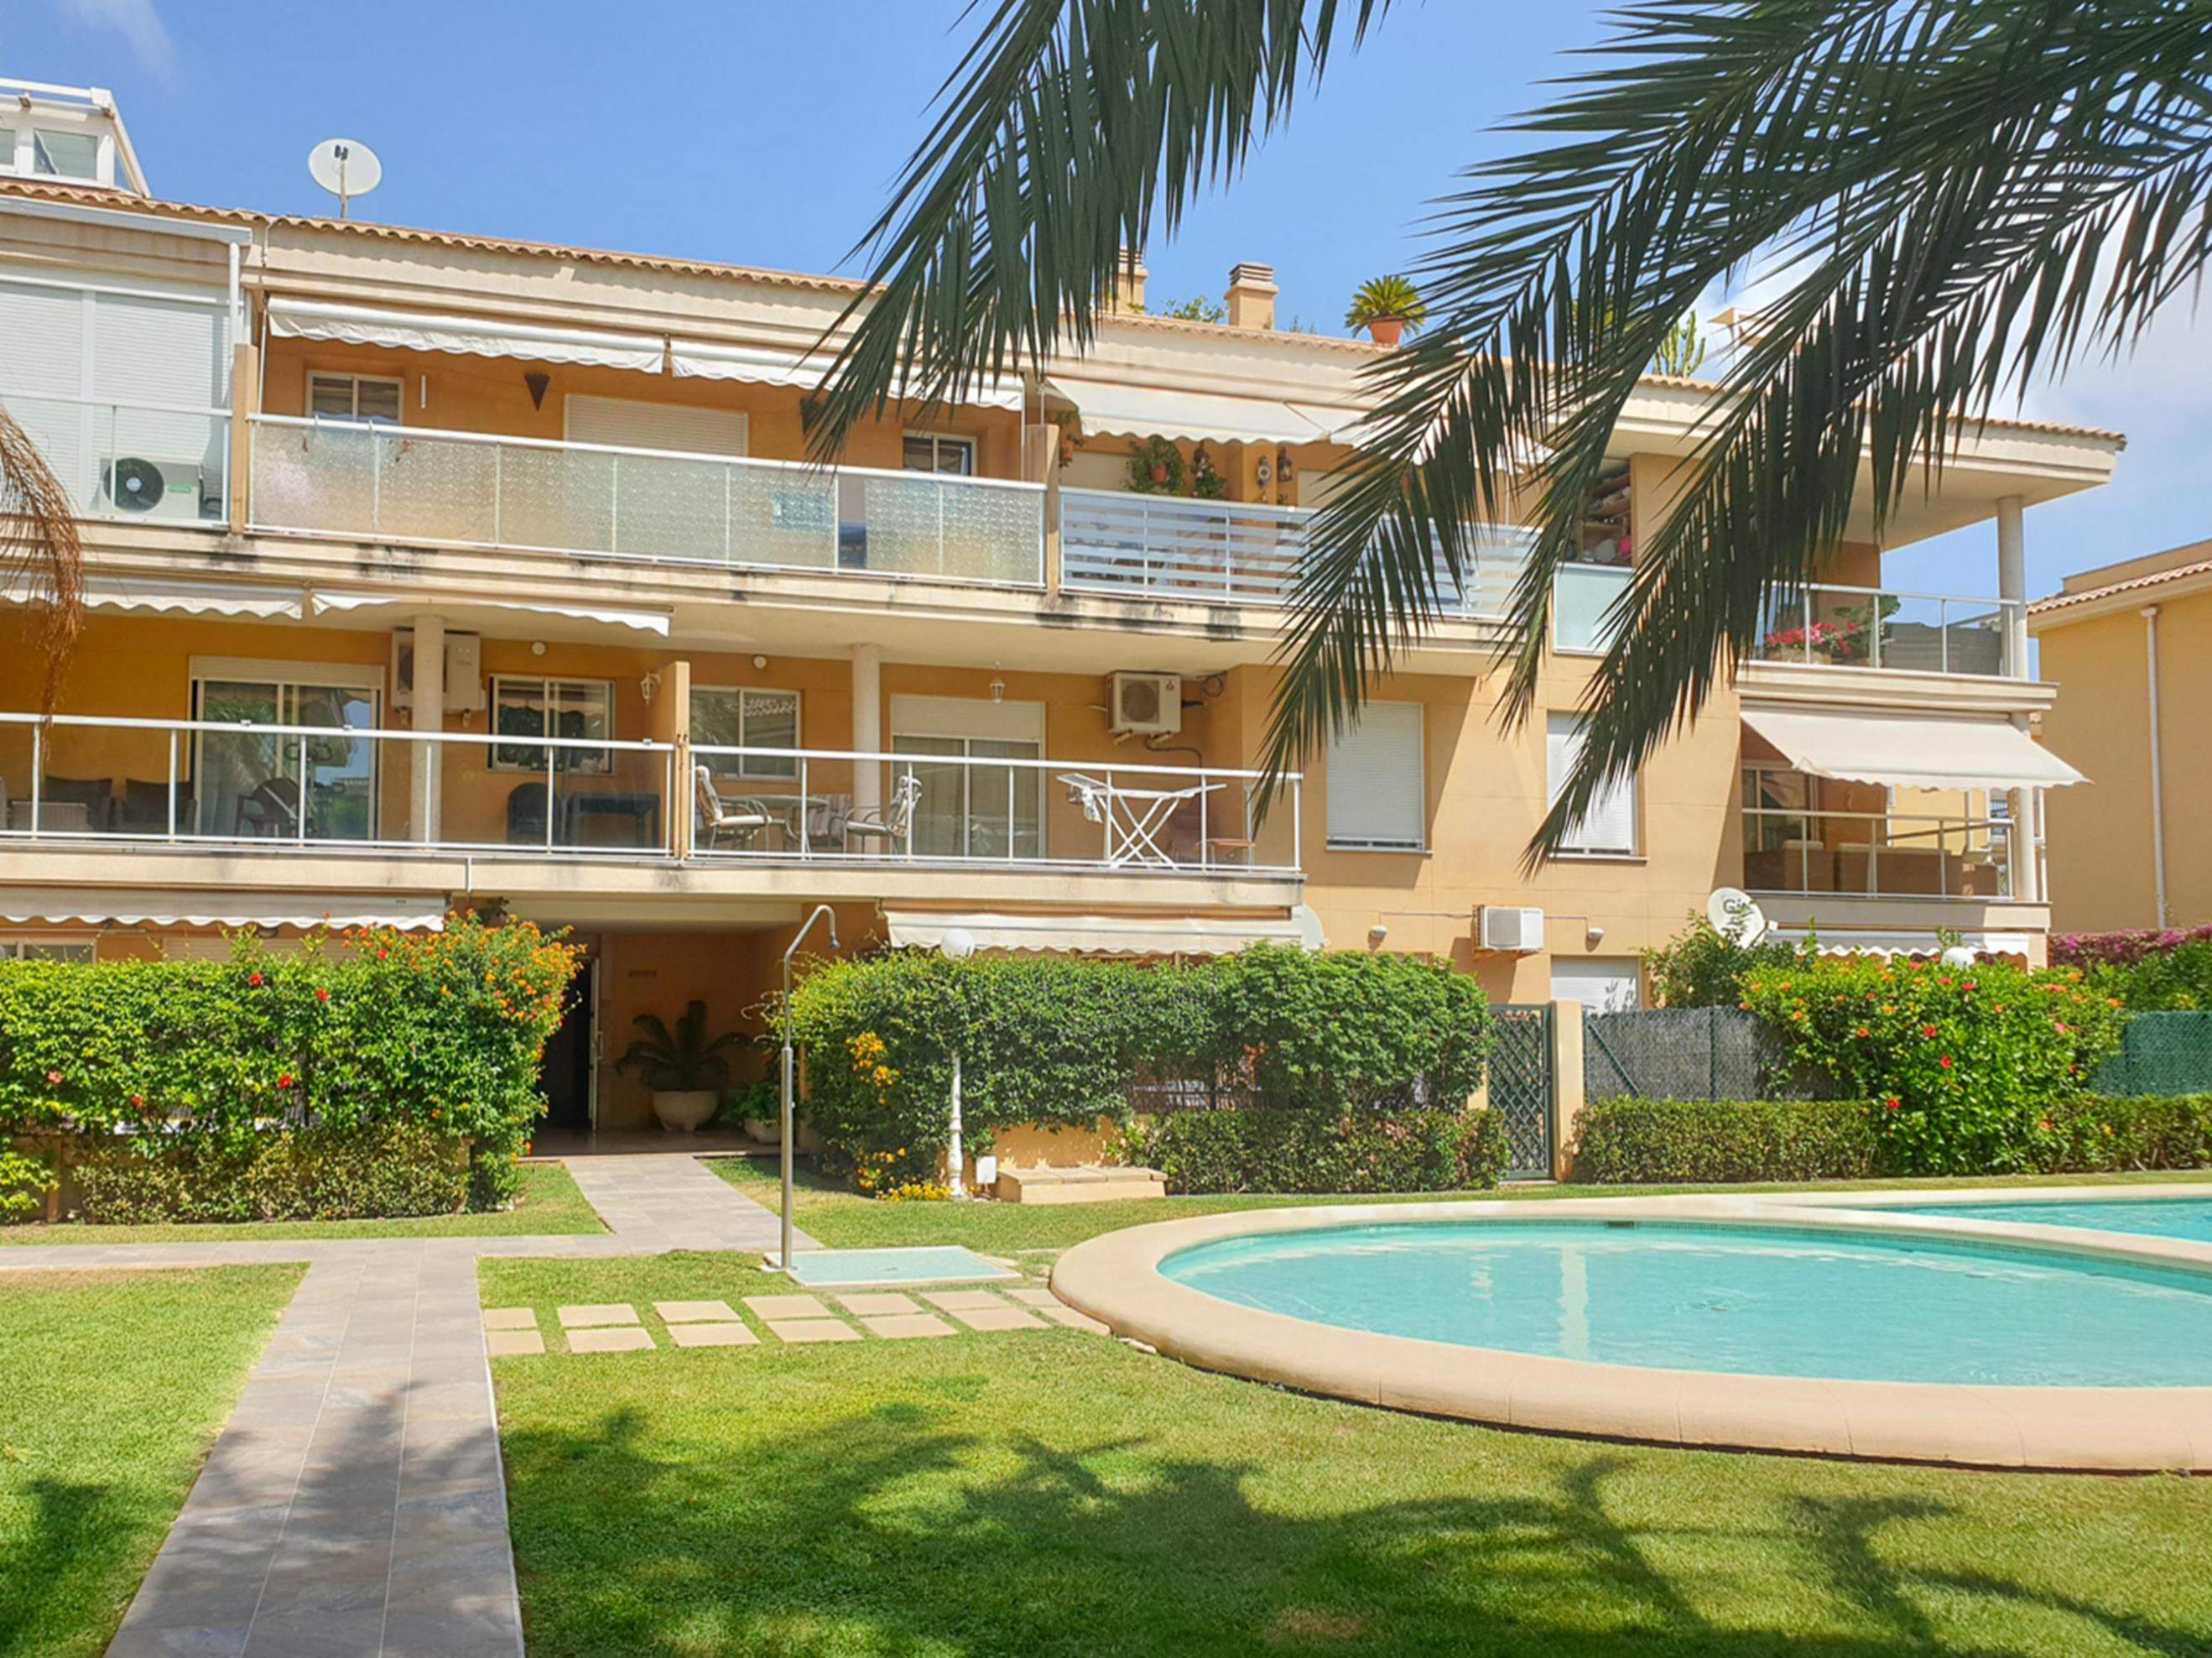 3 Bedroom Apartment in Javea